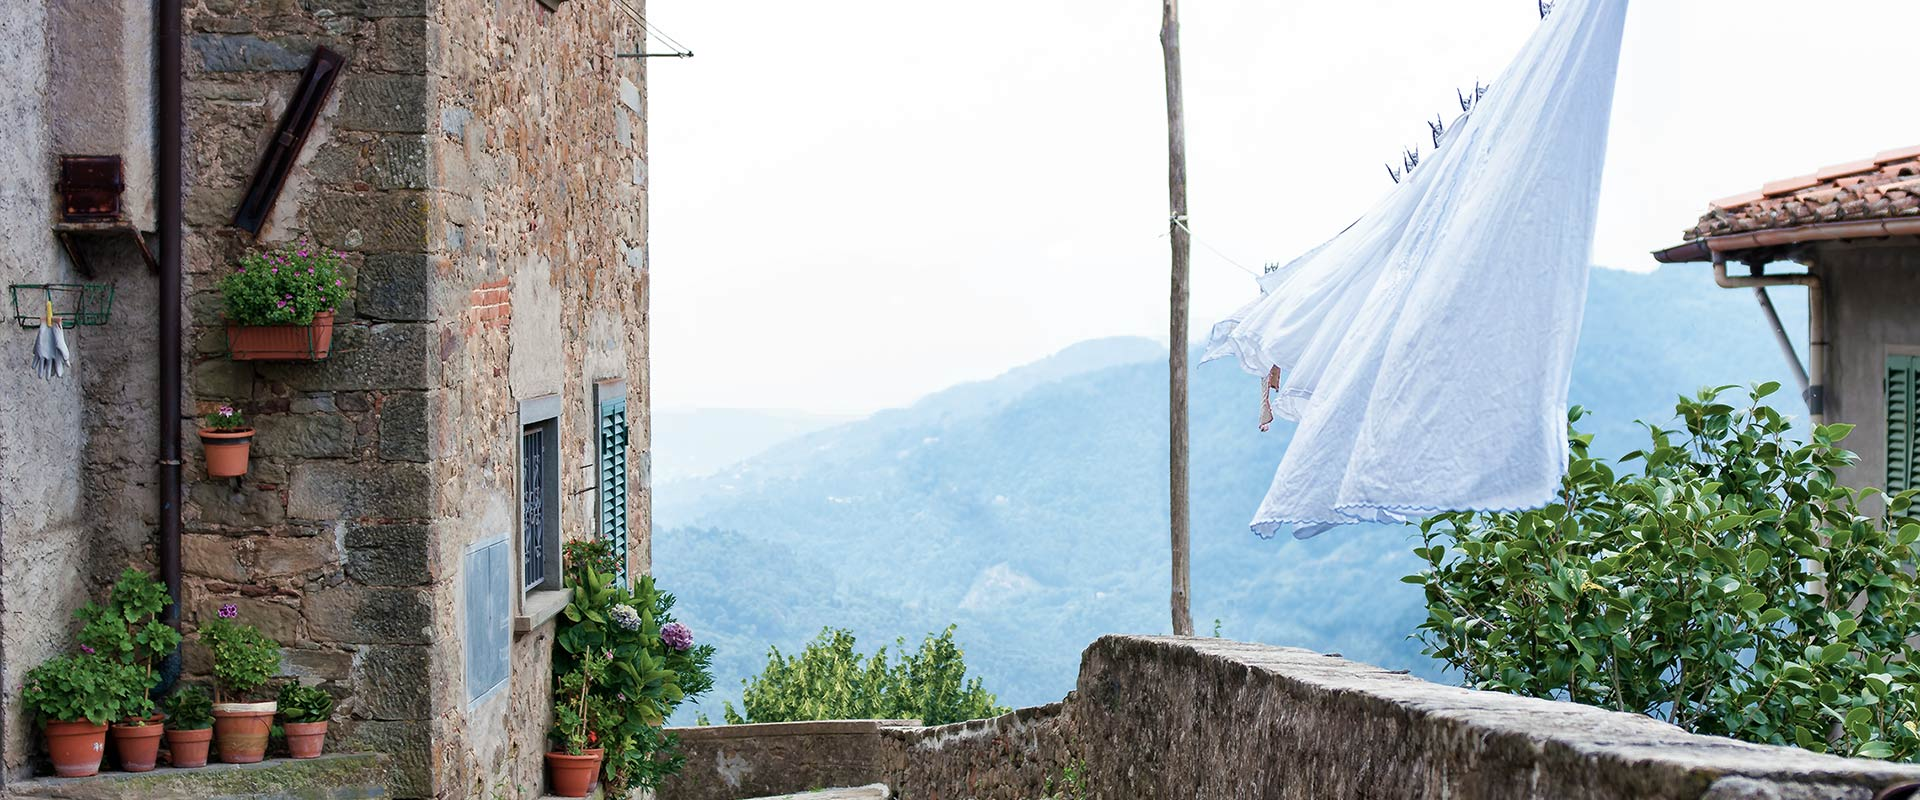 Laundry in the wind, Tuscany, Vellano